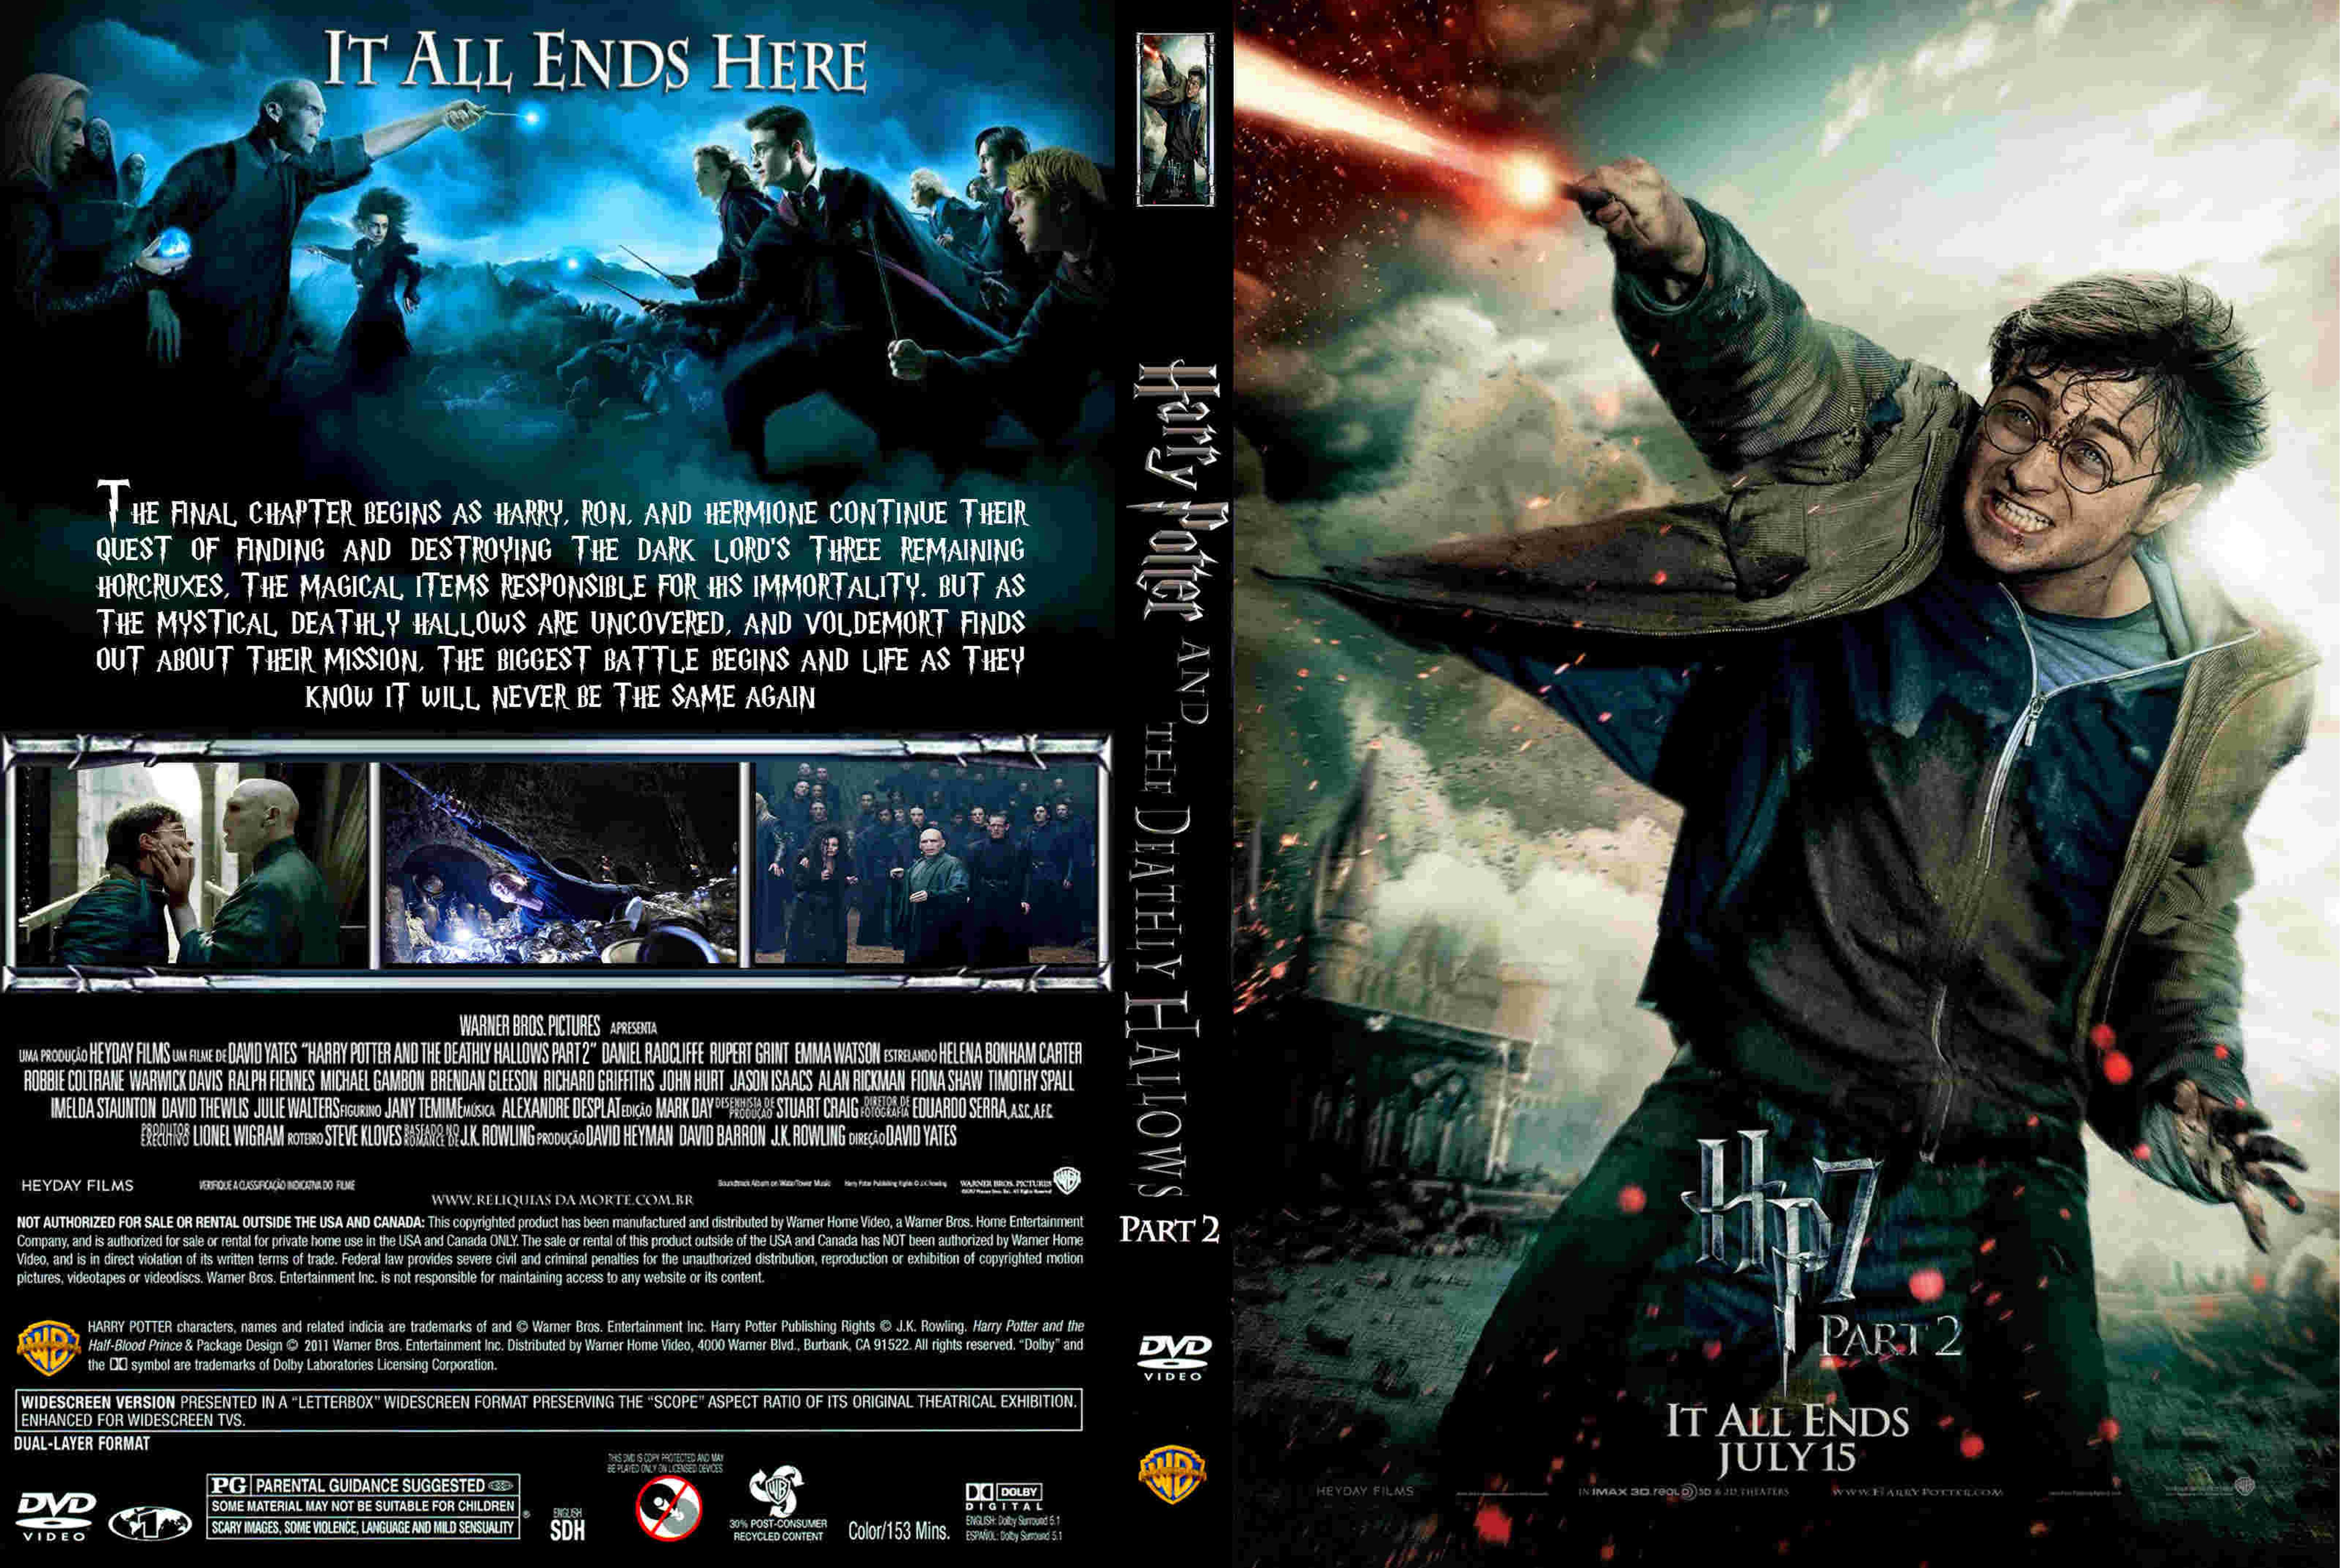 Covers Box Sk Harry Potter And The Deathly Hallows Part 2 2011 High Quality Dvd Blueray Movie